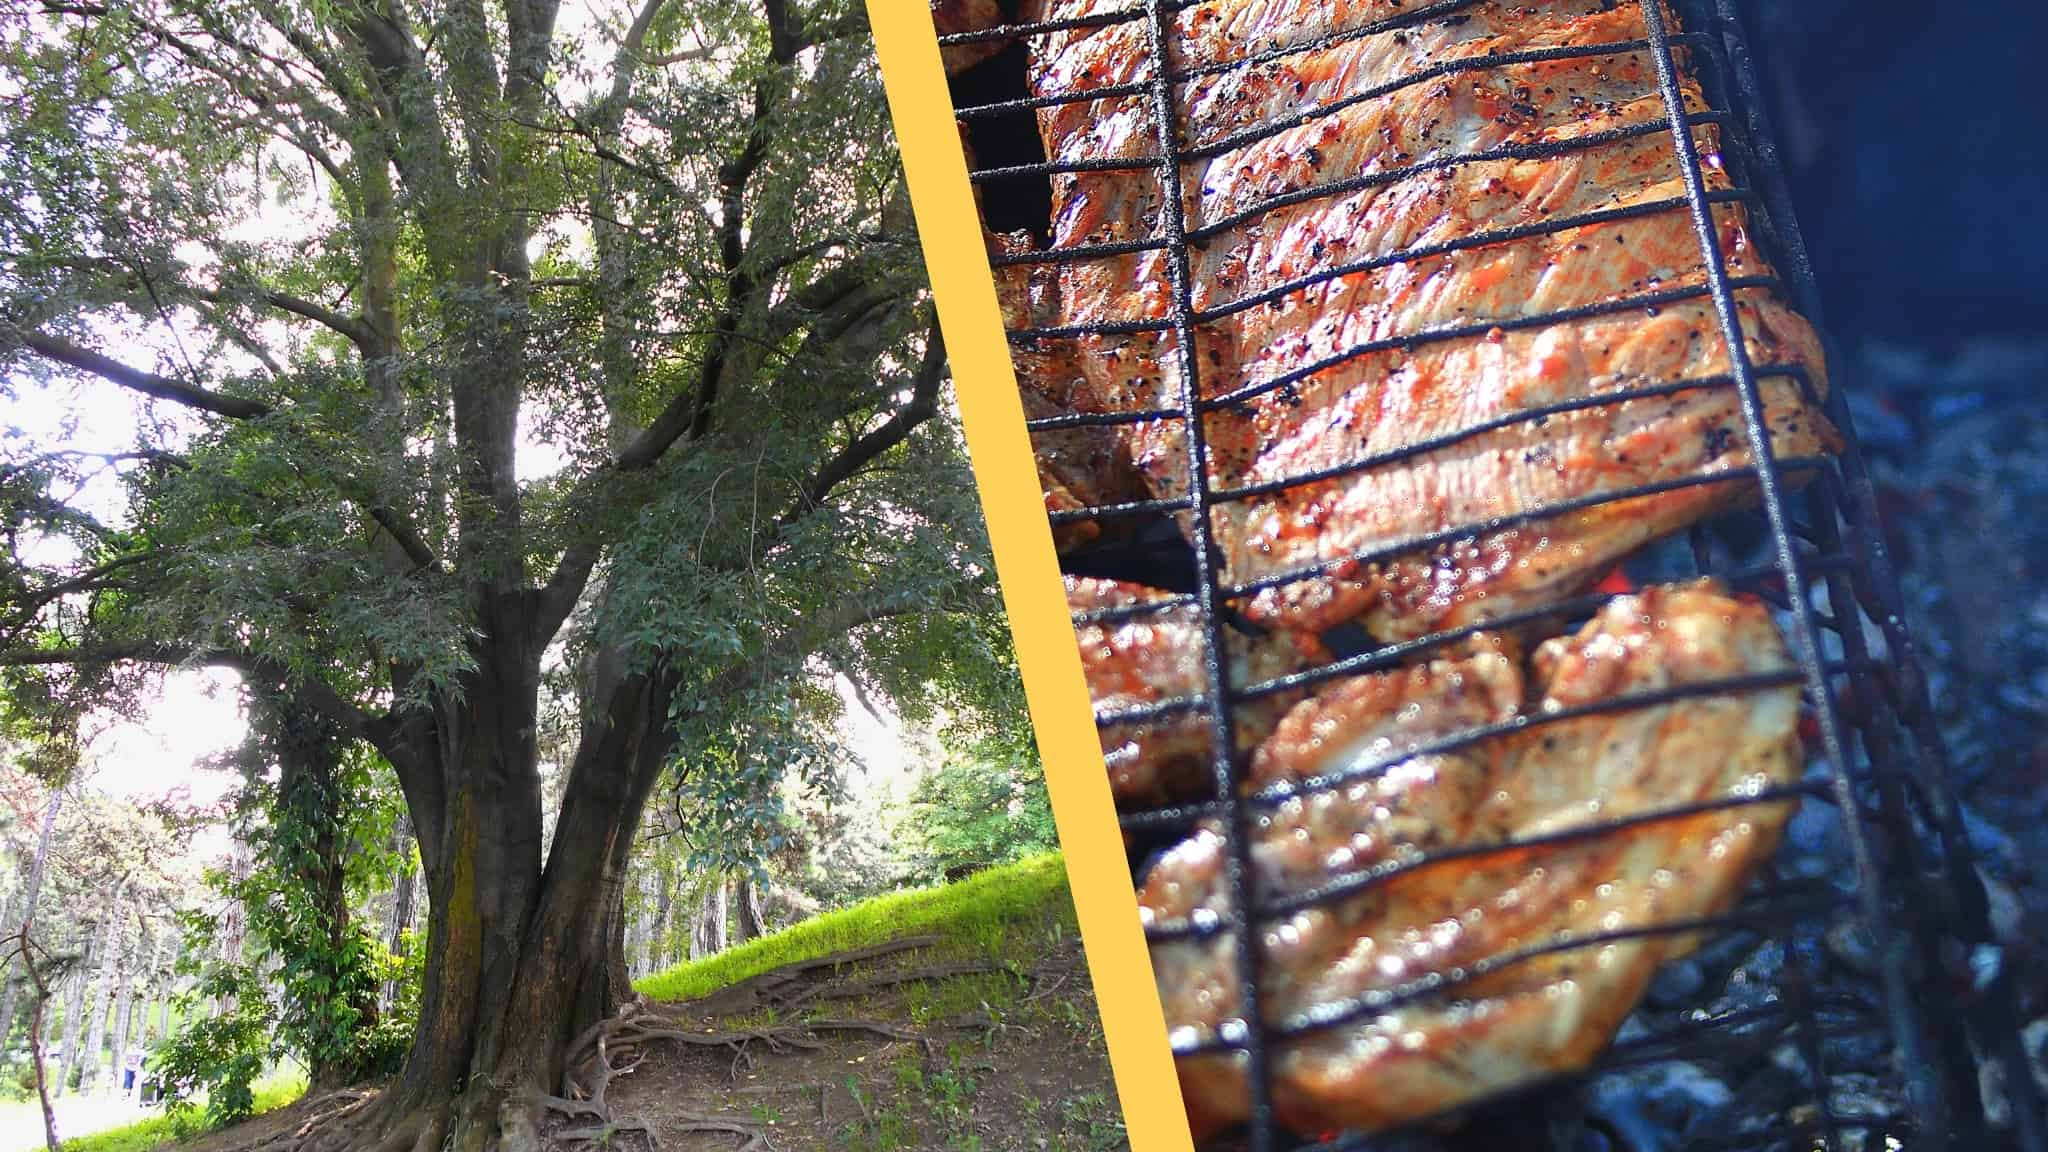 Is Hackberry Good for Smoking Meat?